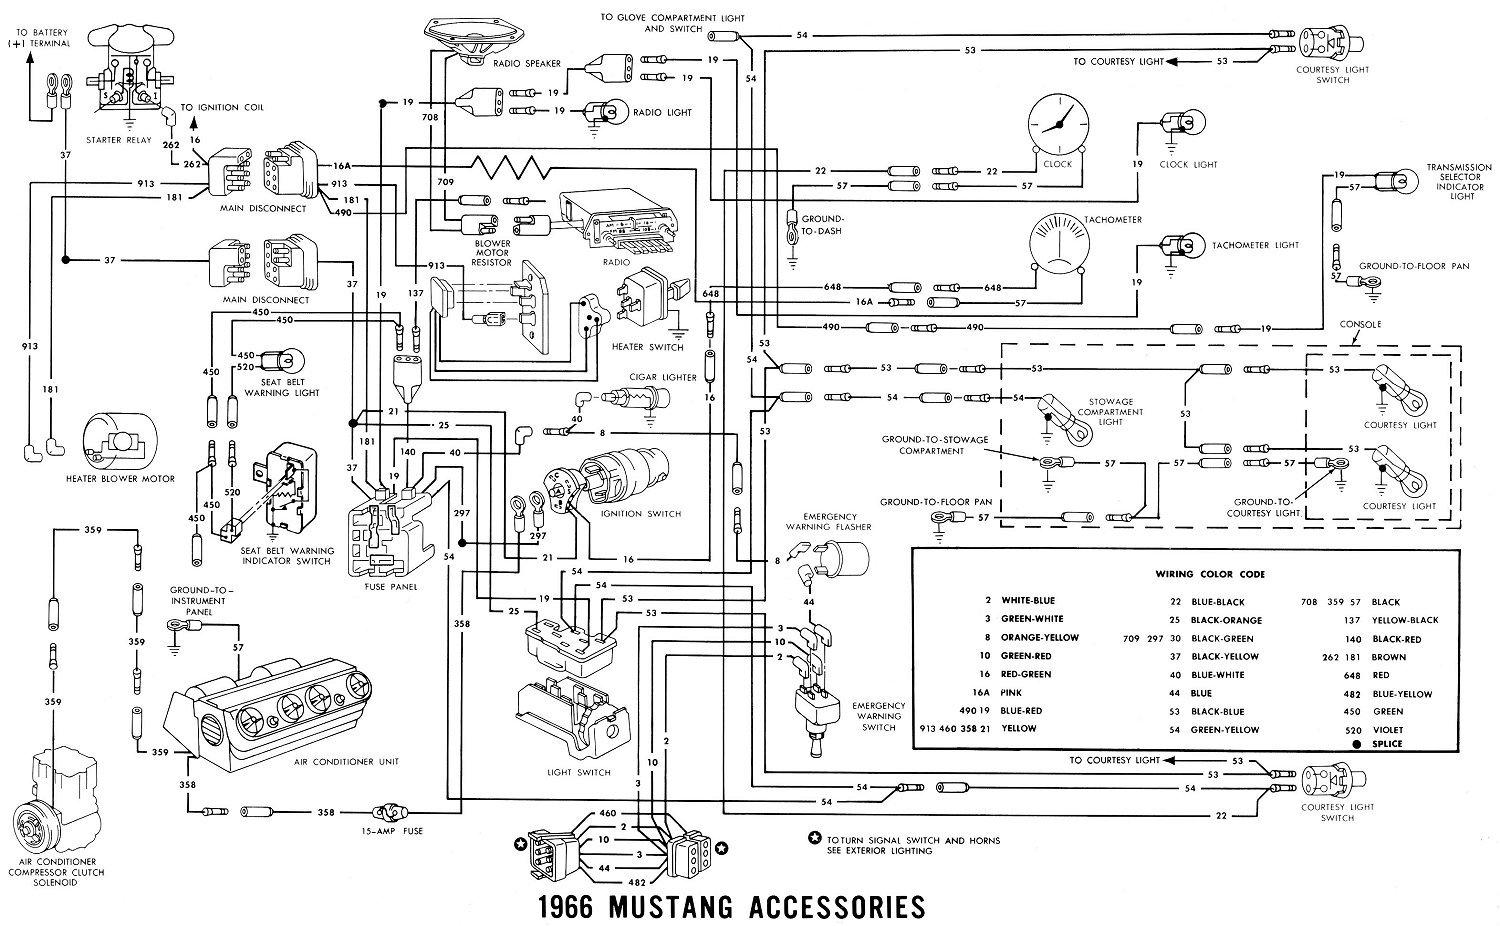 66 ford pickup wiring diagram pdf with Wiring on Index2 likewise Wiring likewise Exploded View For The 1993 Chevrolet Pickup Tilt as well 1126890 65 Ford F100 Wiring Diagrams additionally 75 Cj5 Wiring Harness Replacement 12456.